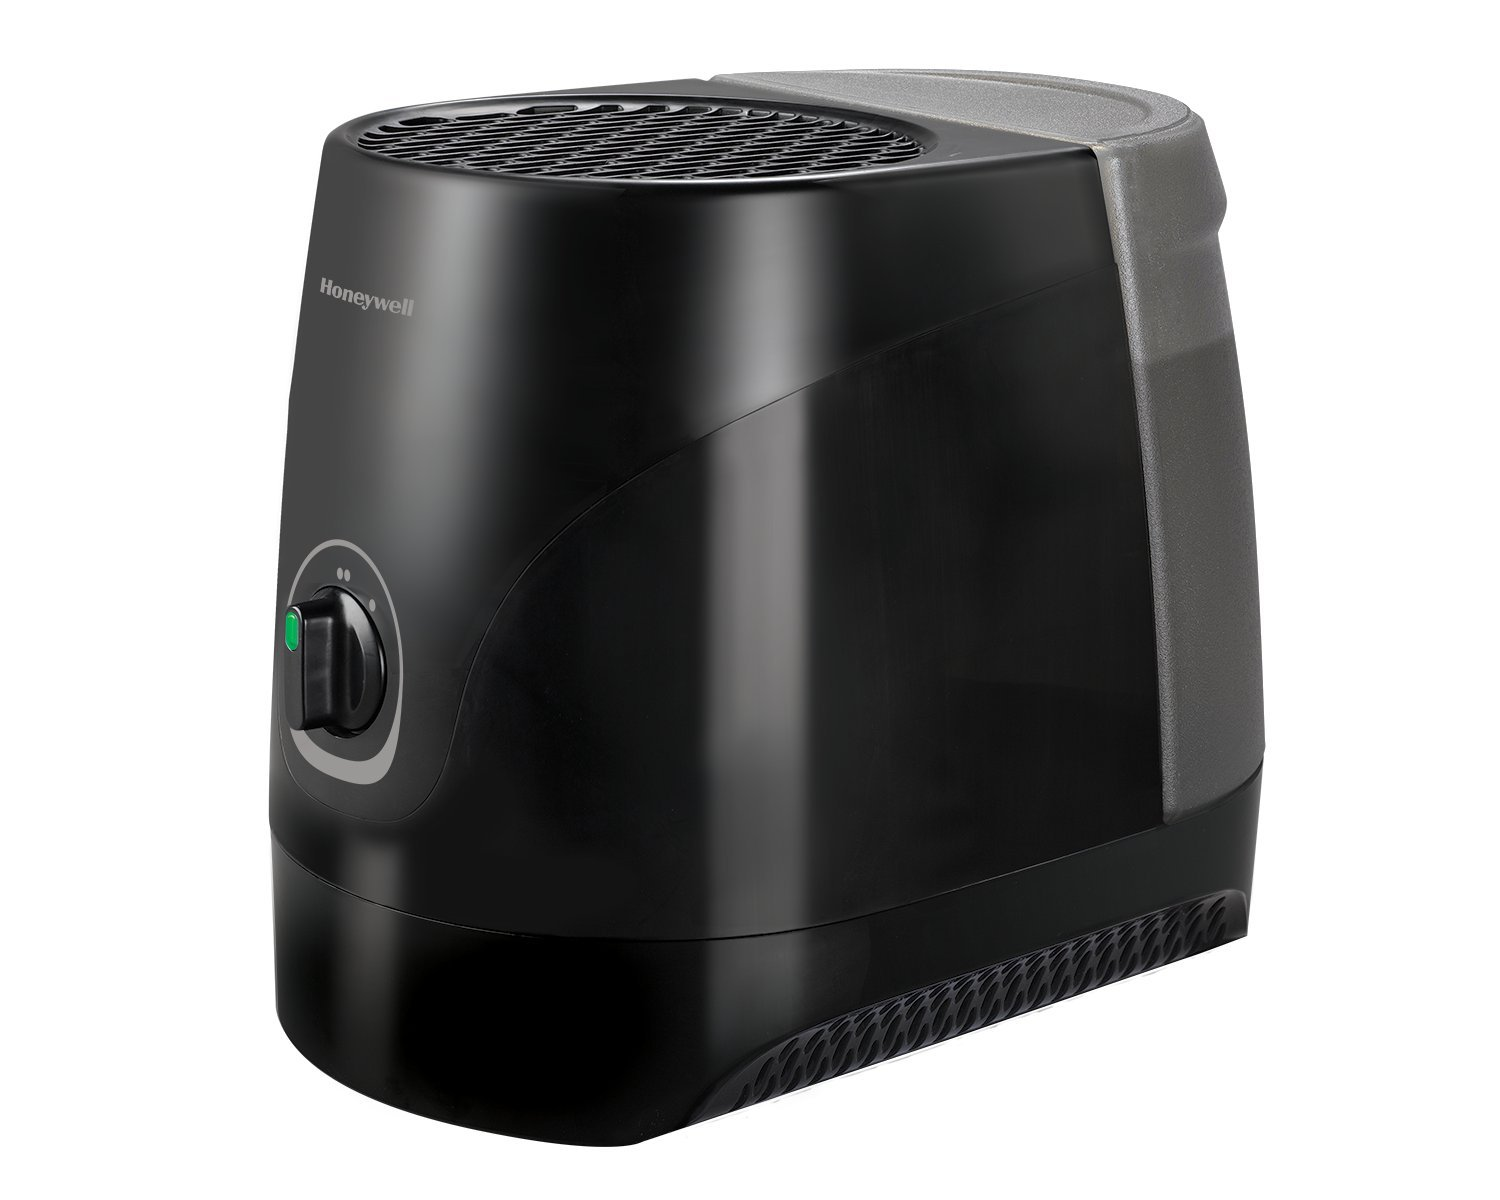 Honeywell Cool Moisture Humidifier, Black Kaz Inc. HEV320B